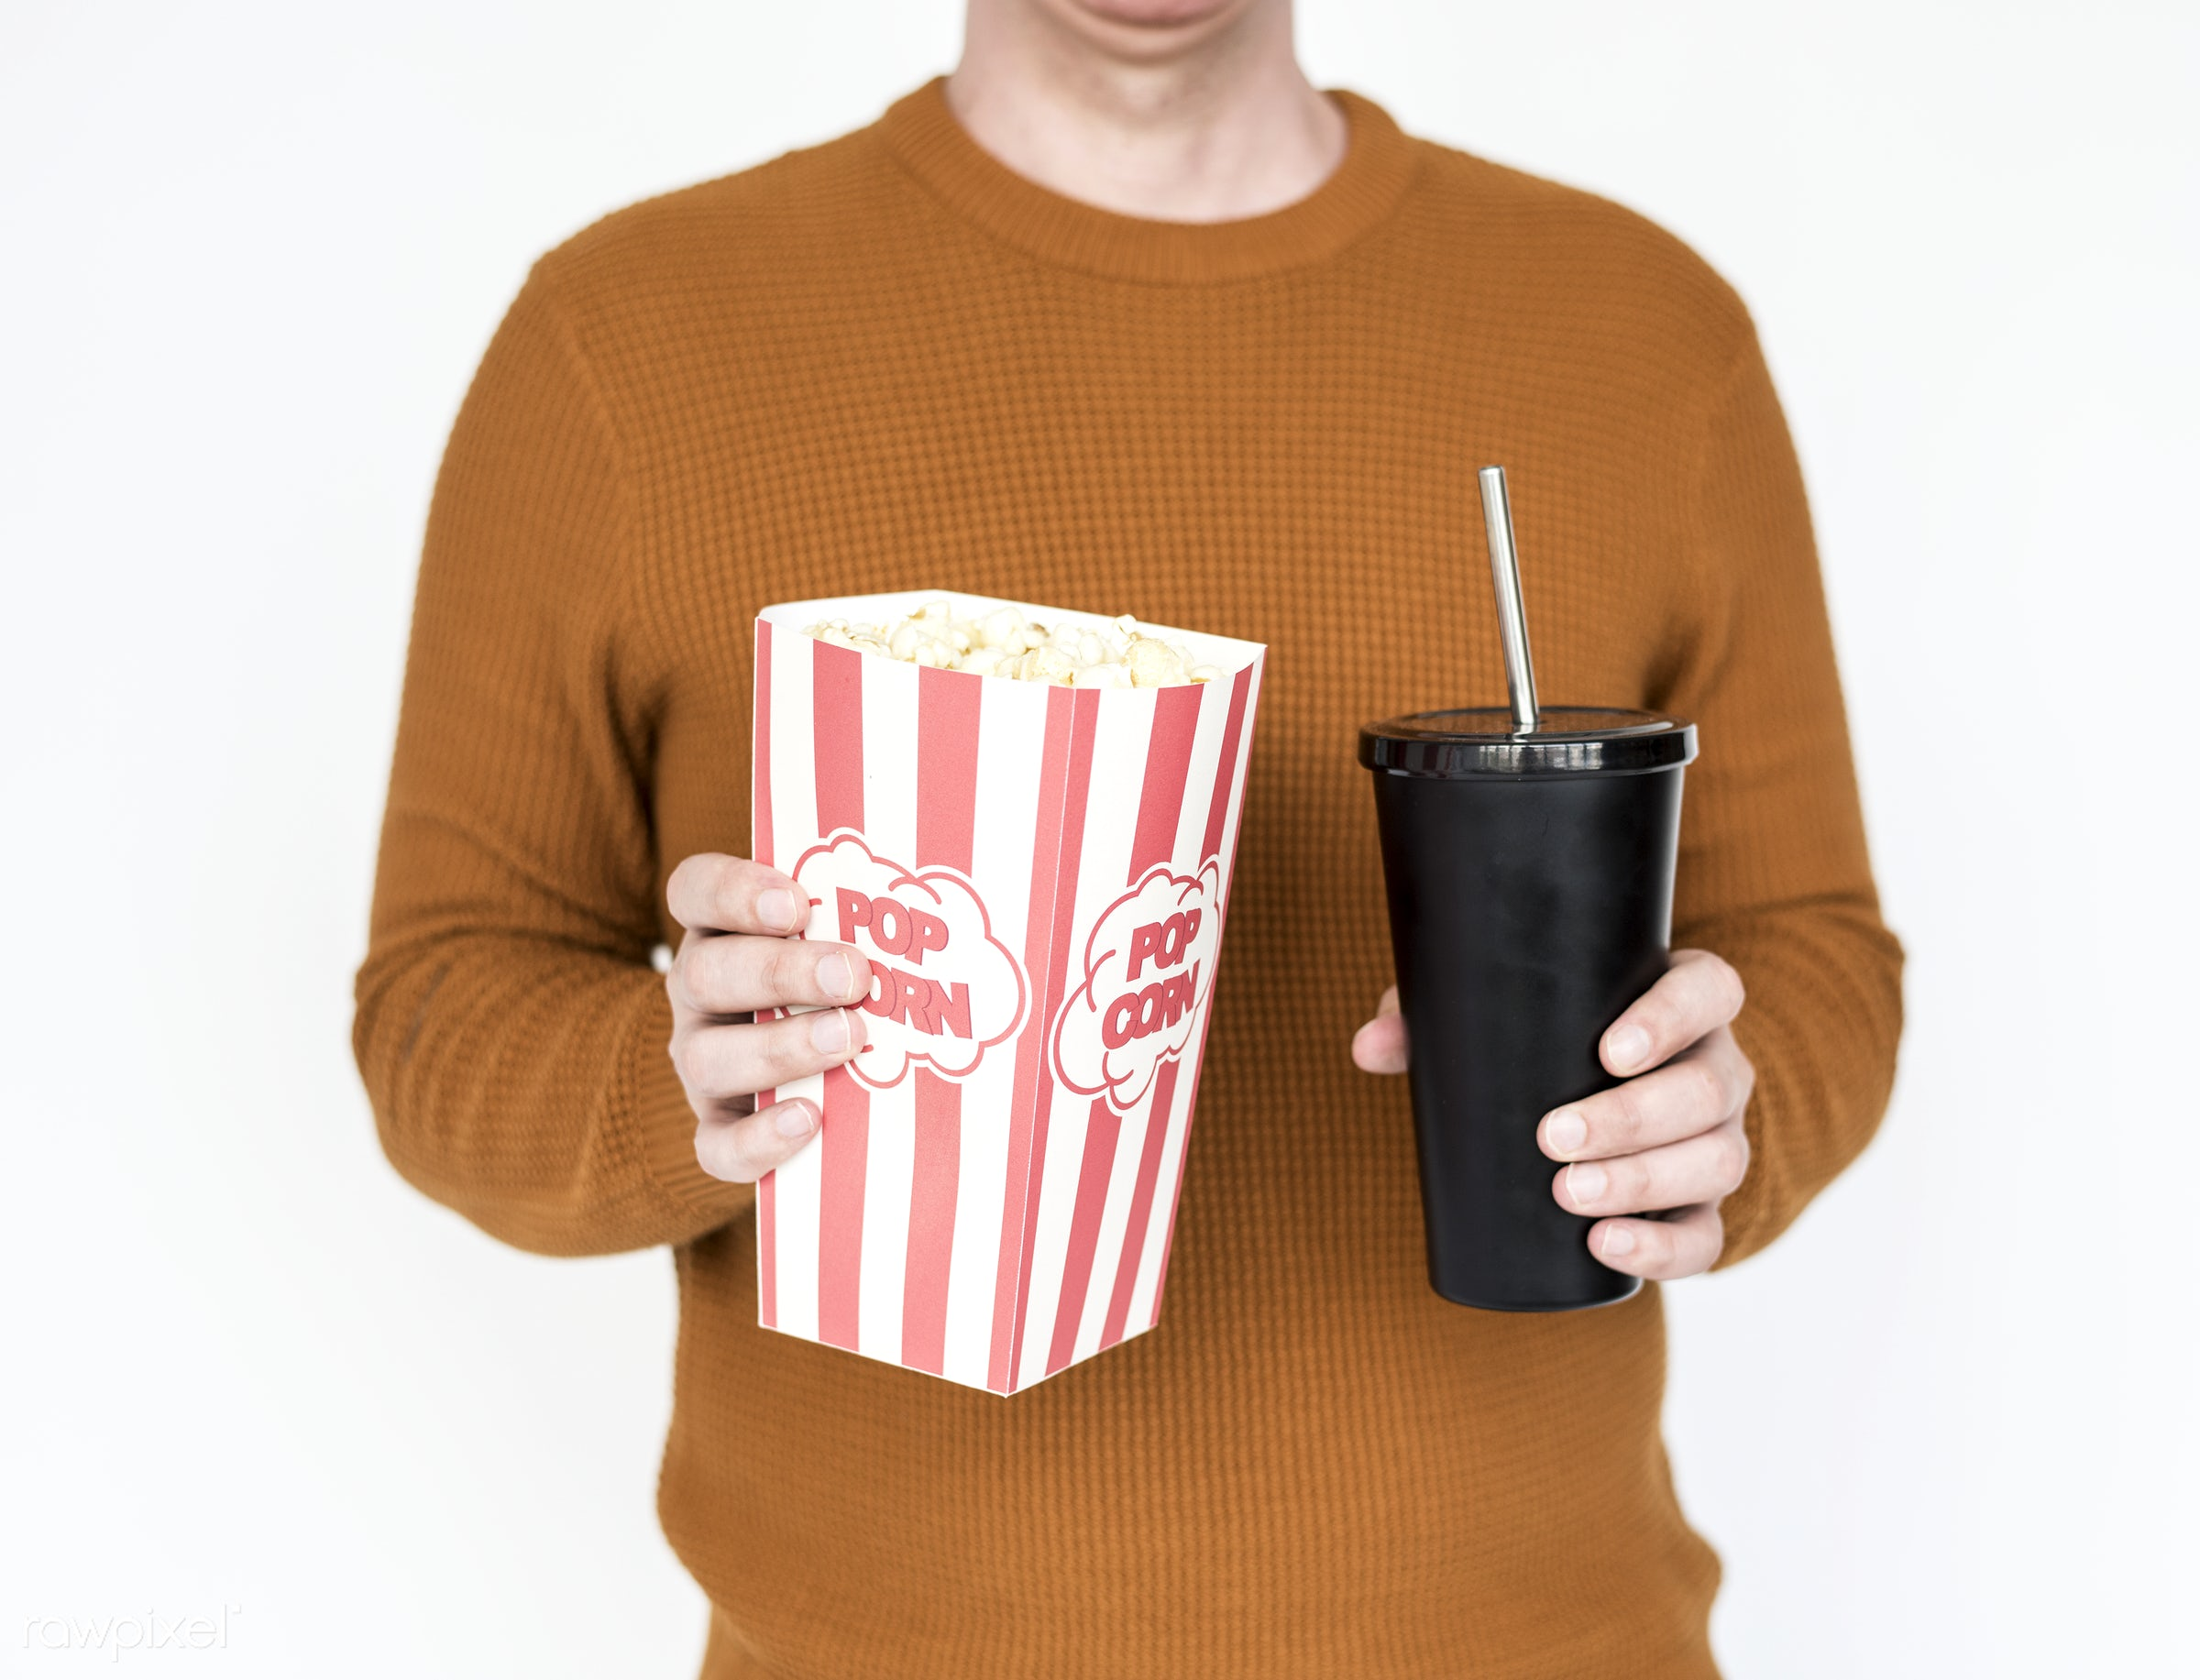 expression, popcorn, studio, model, person, isolated on white, race, people, style, casual, lifestyle, men, man, isolated,...